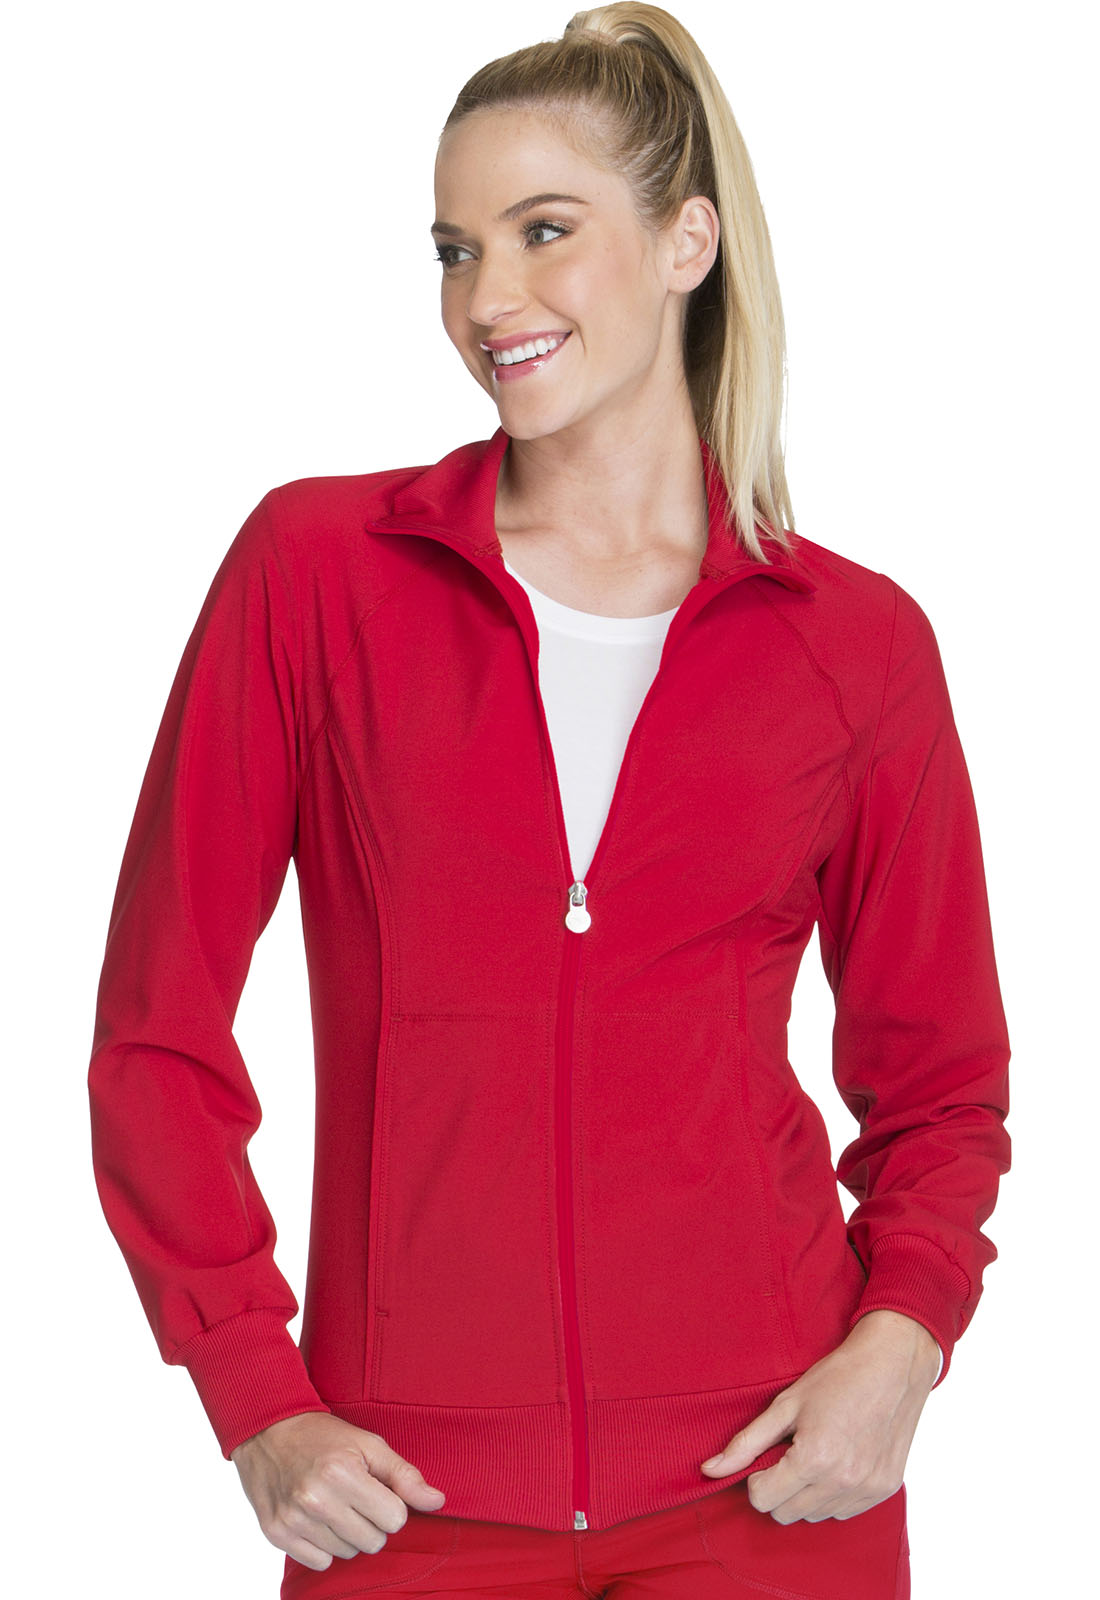 Infinity Zip Front Warm-Up Jacket in Red 2391A-RED from ...